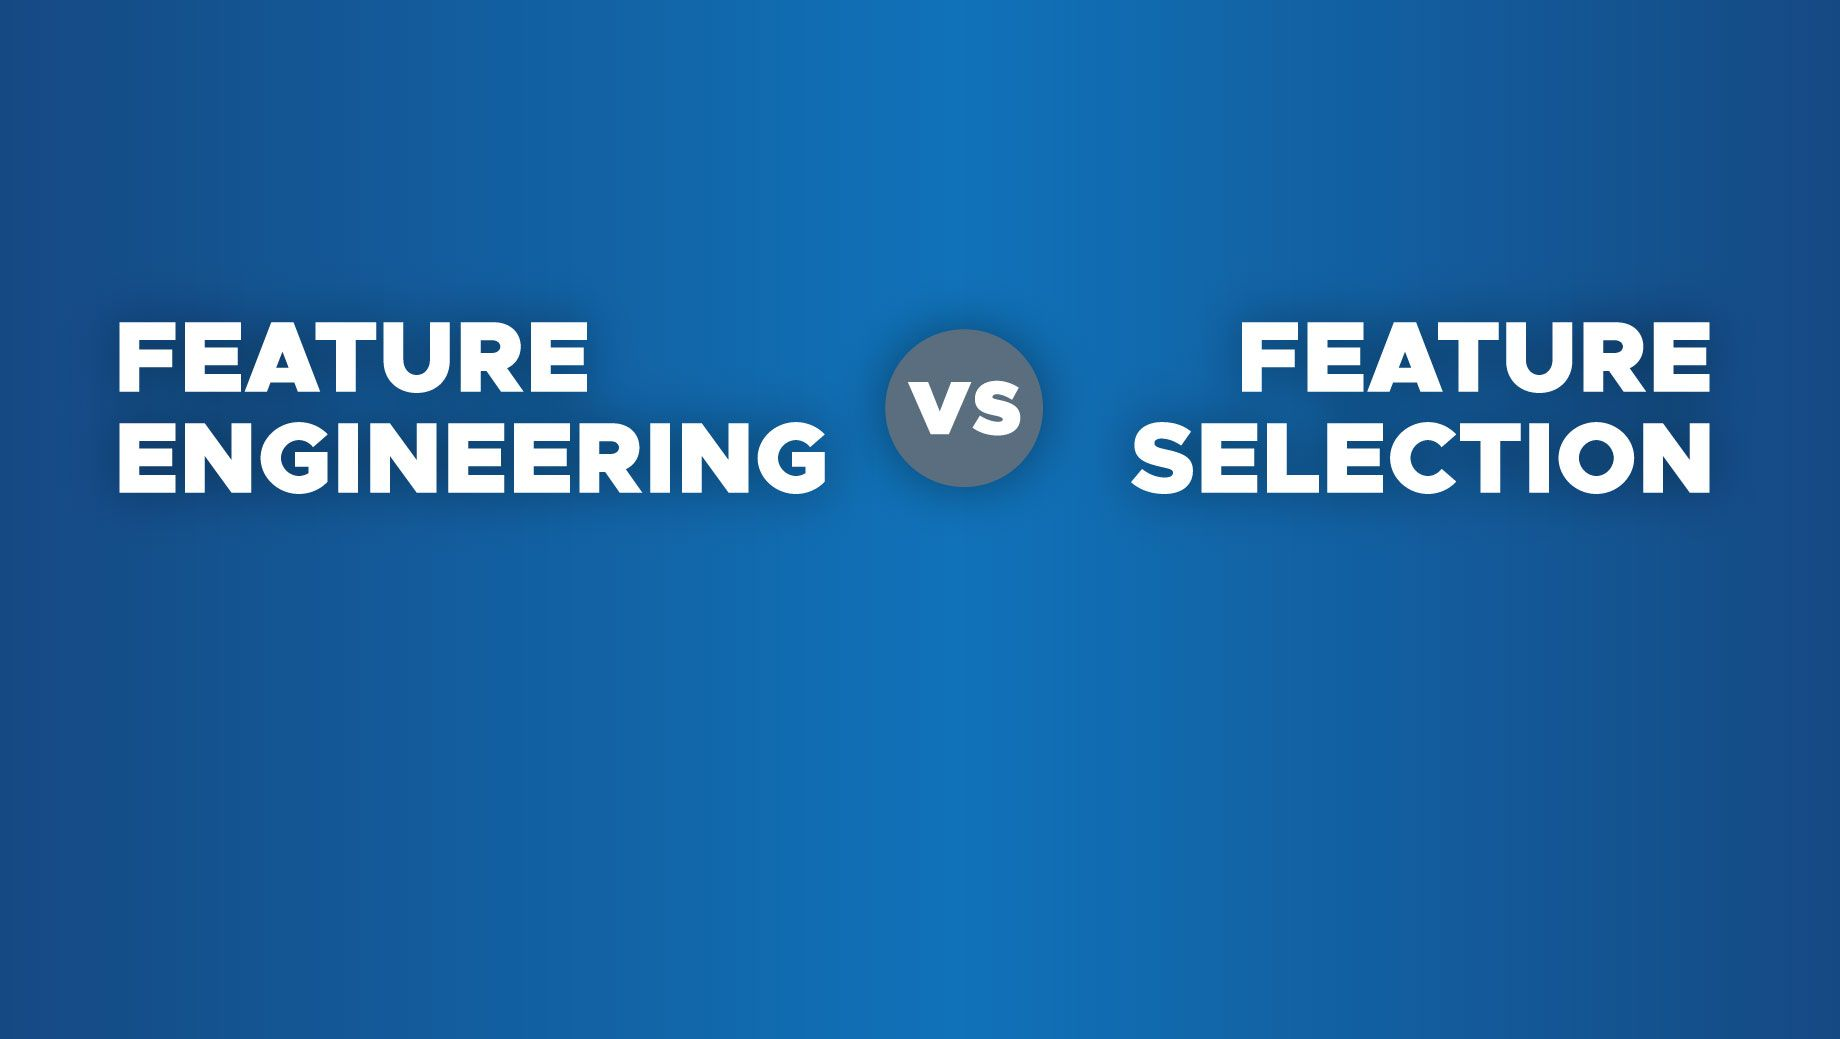 Feature Engineering vs Feature Selection